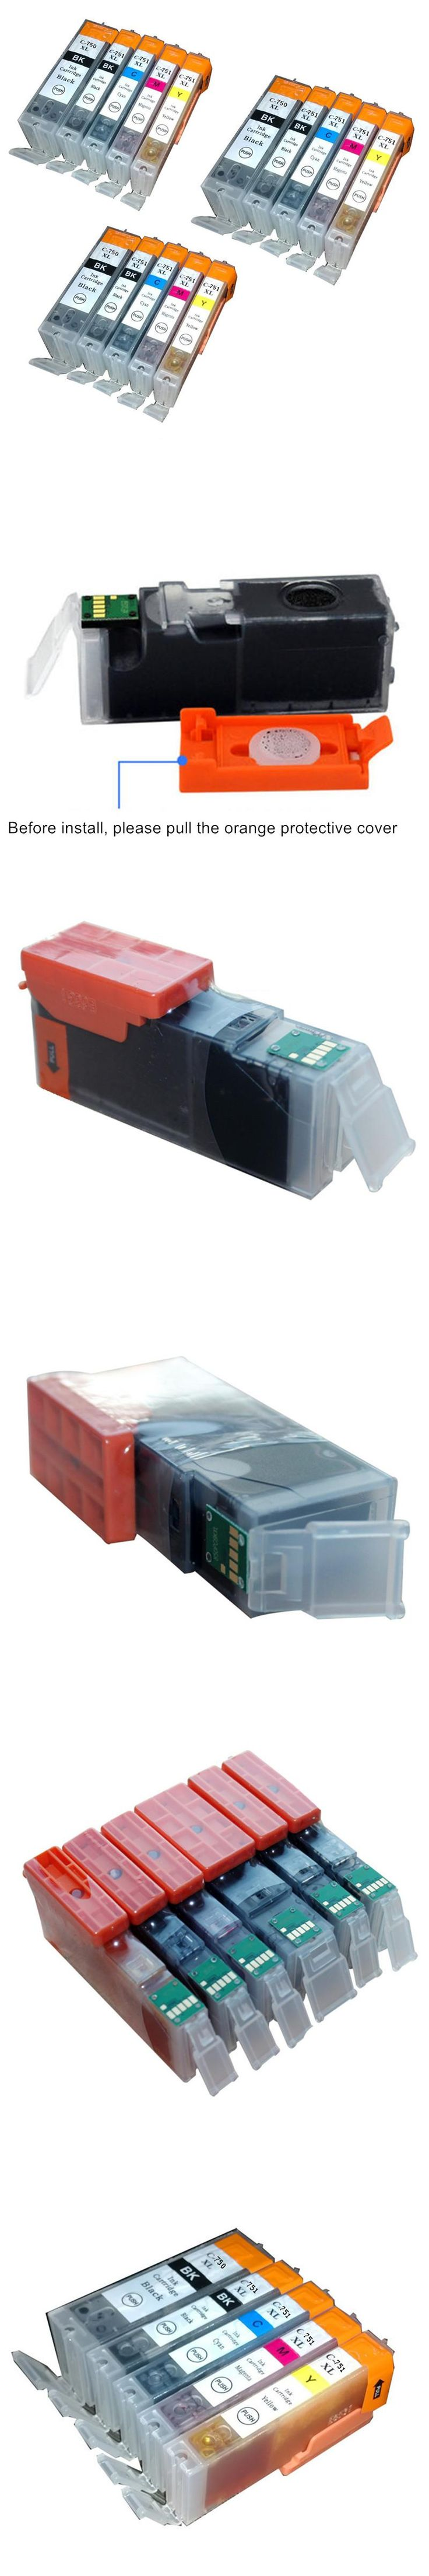 15PK Bulk Ink PGI 750 XL CLI 751 XL For Canon Ink Cartridge PIXMA MX727 MX927 Ip7270 IX6770 MG5570 IX6870 IP8770 MG6470 MG5470